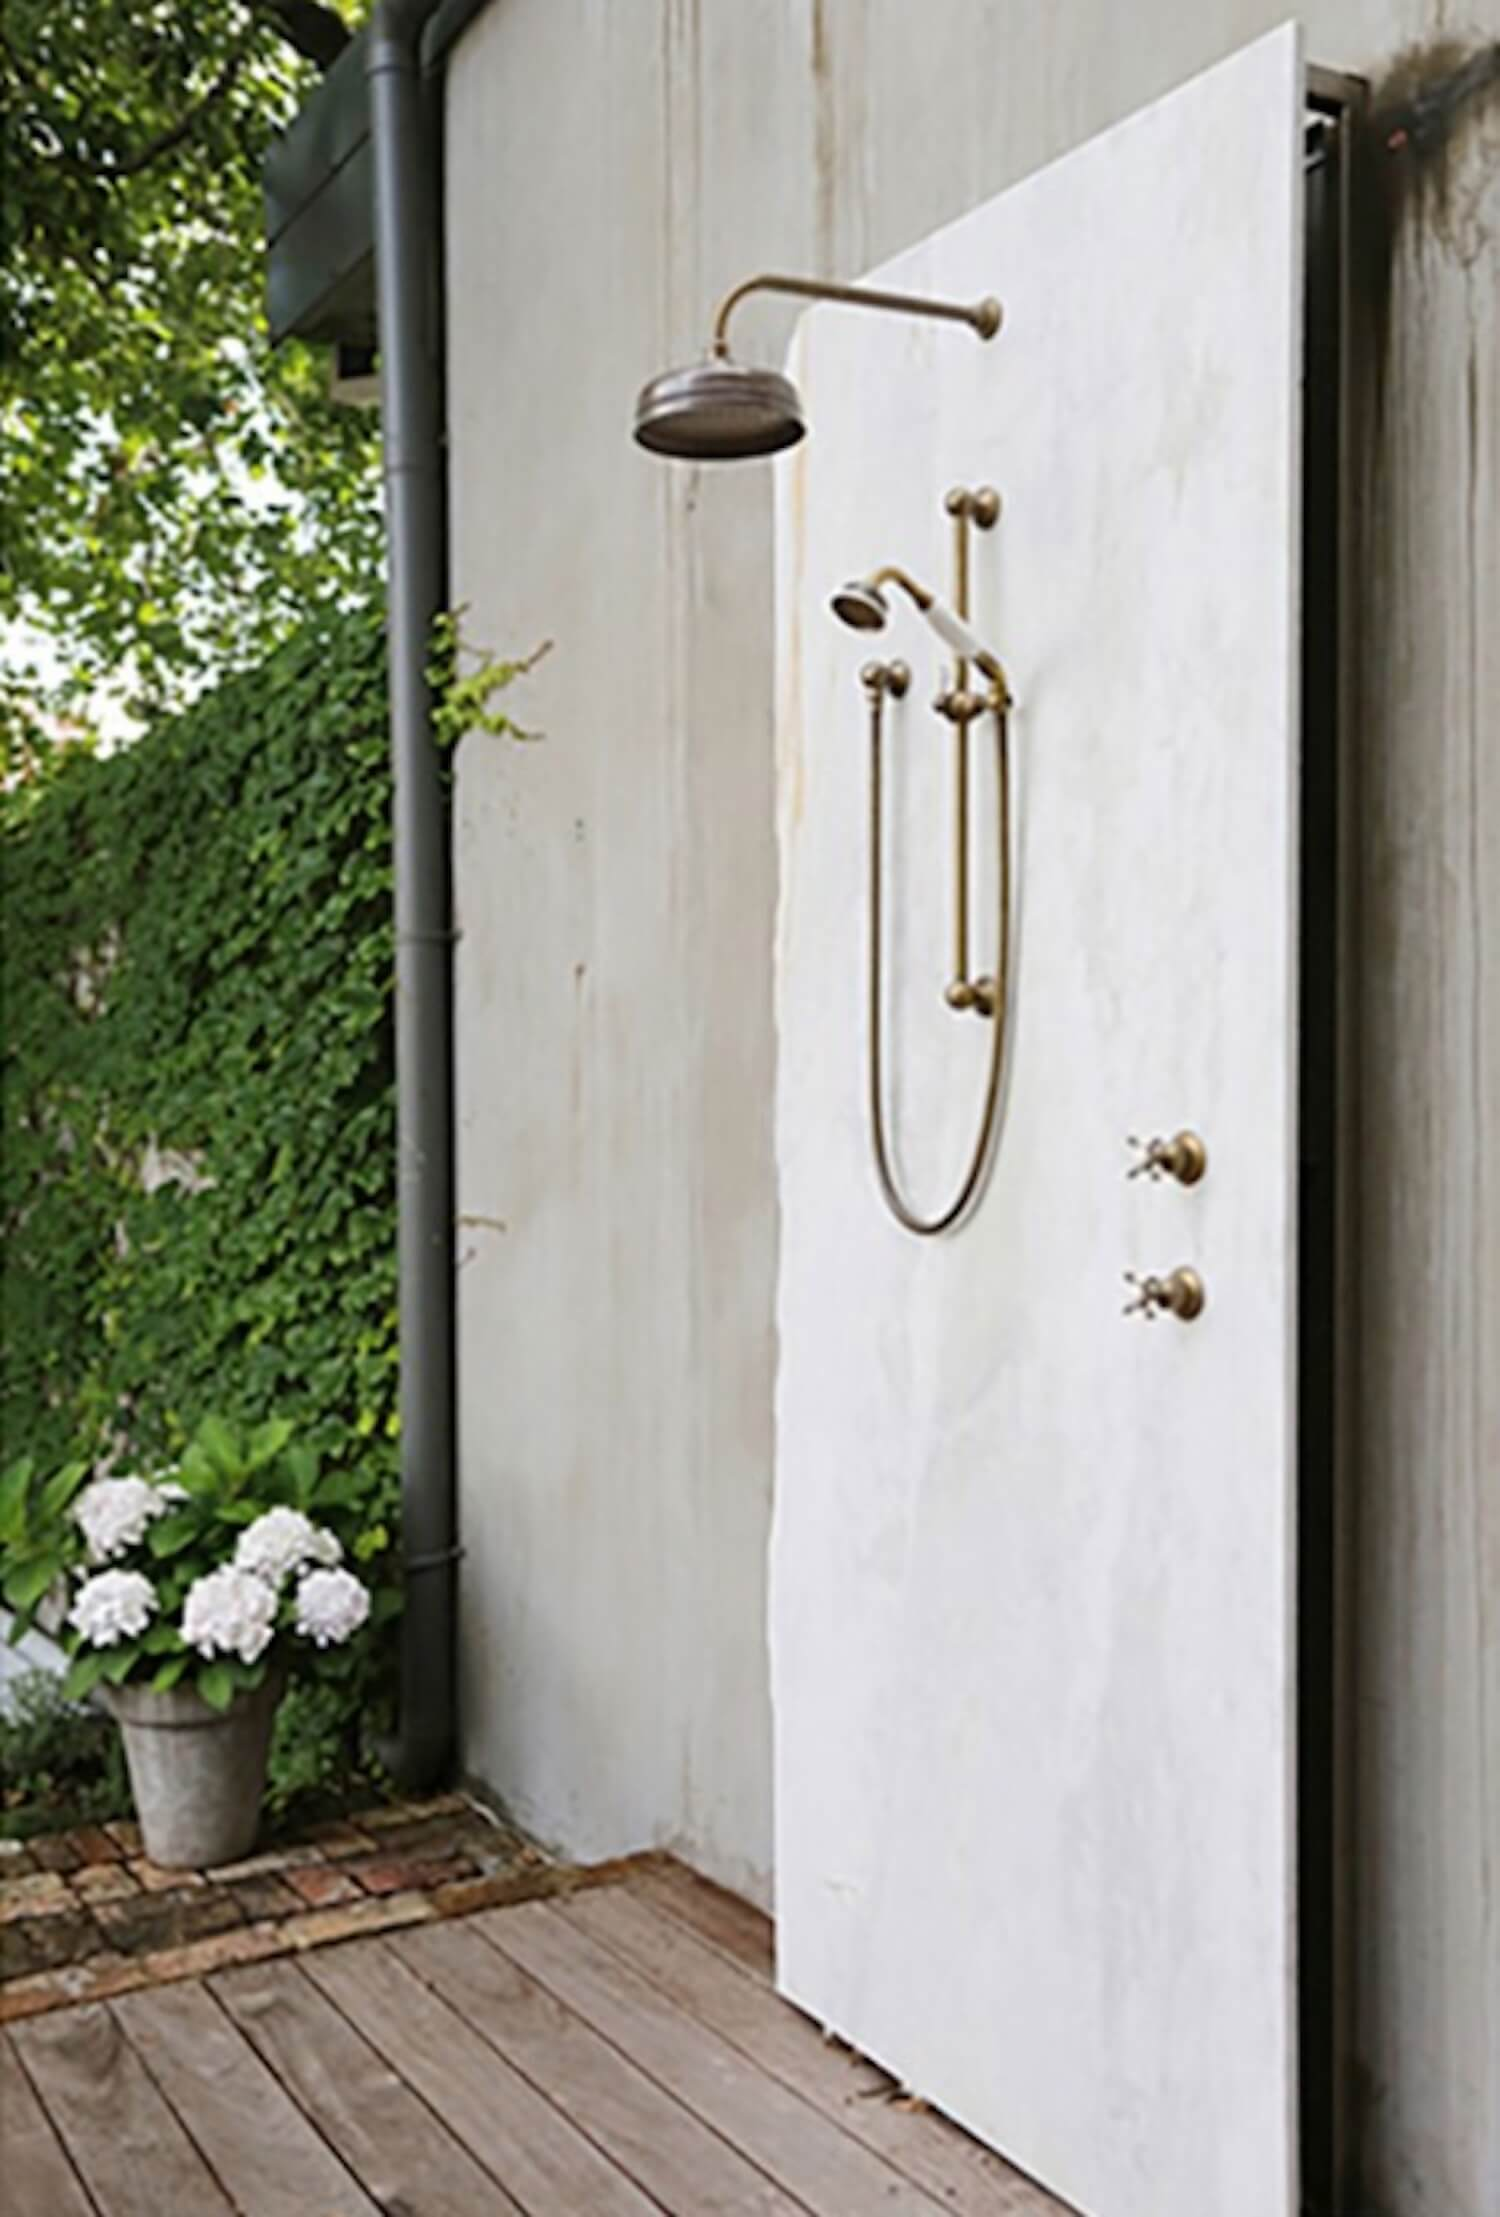 you showers large for shower will make your article these consider yard own outdoor one